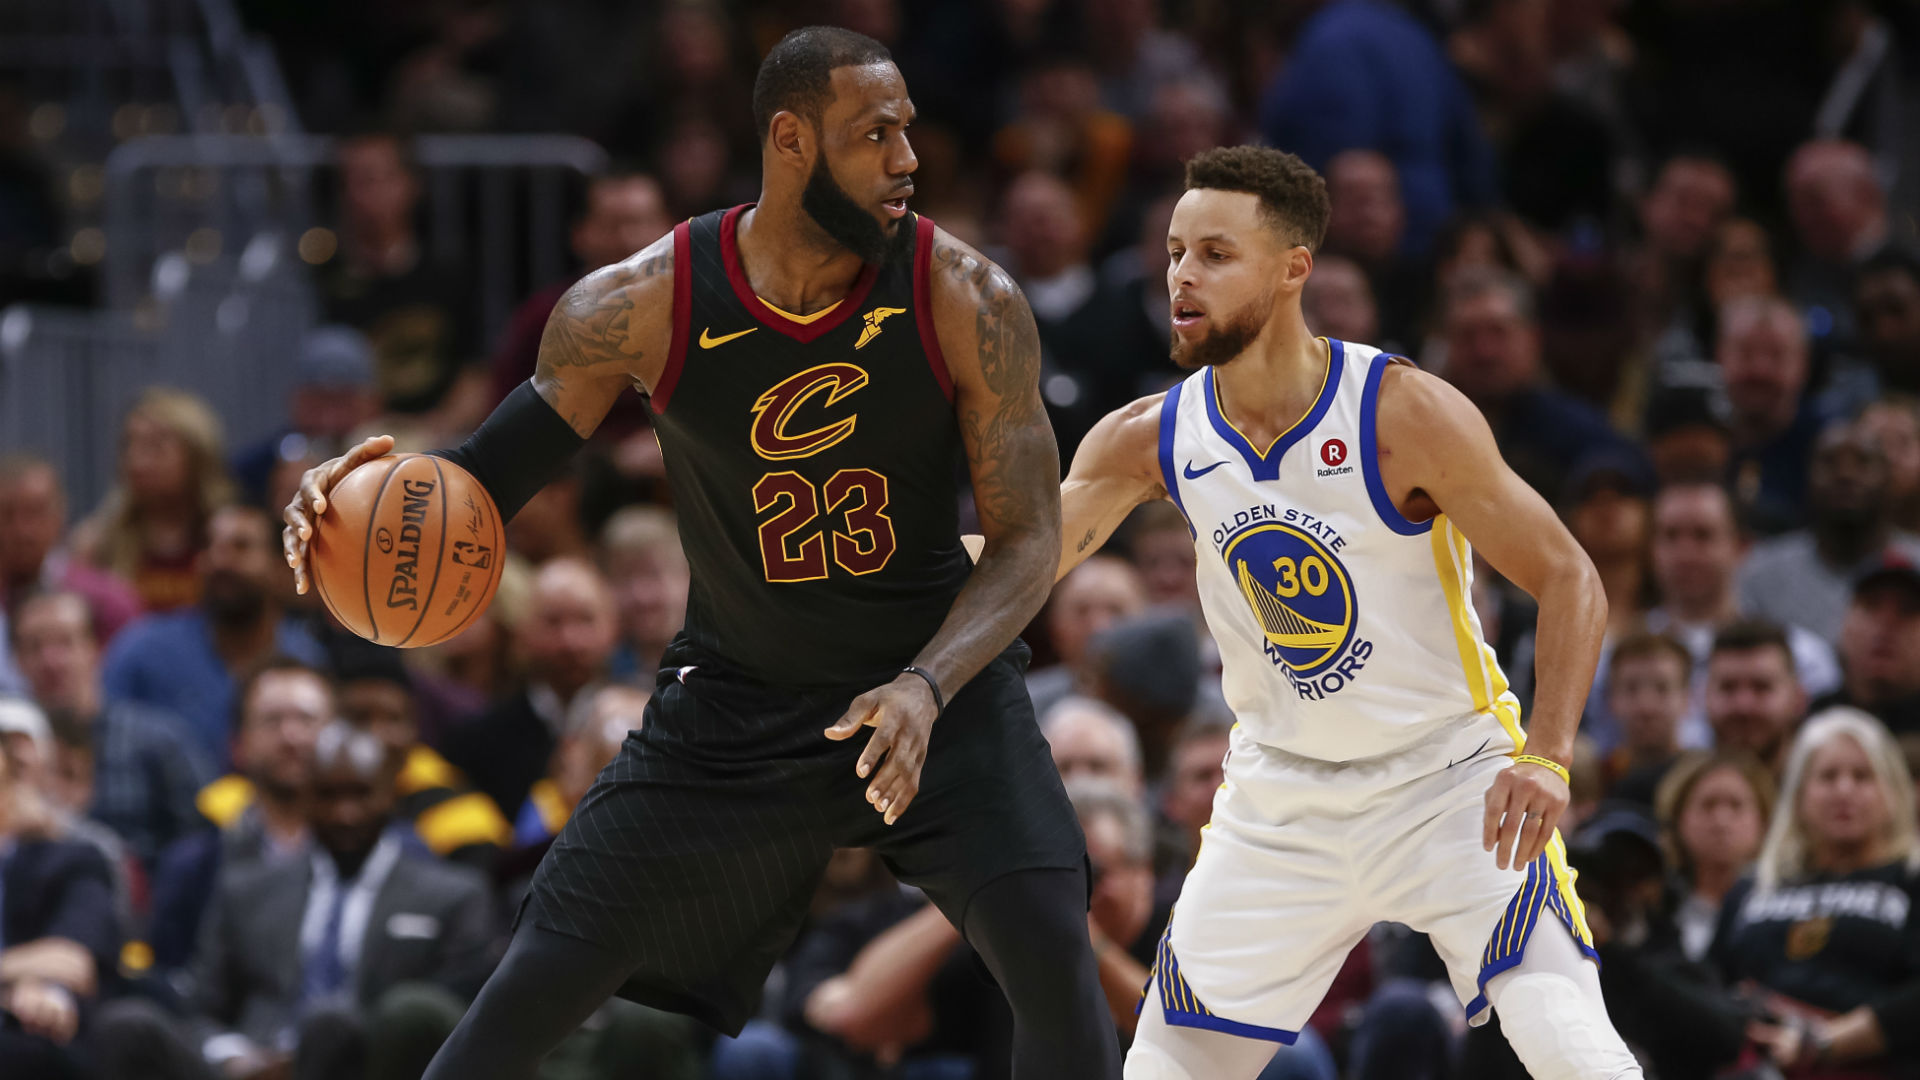 LeBron James and the Golden State Warriors joining forces? Video